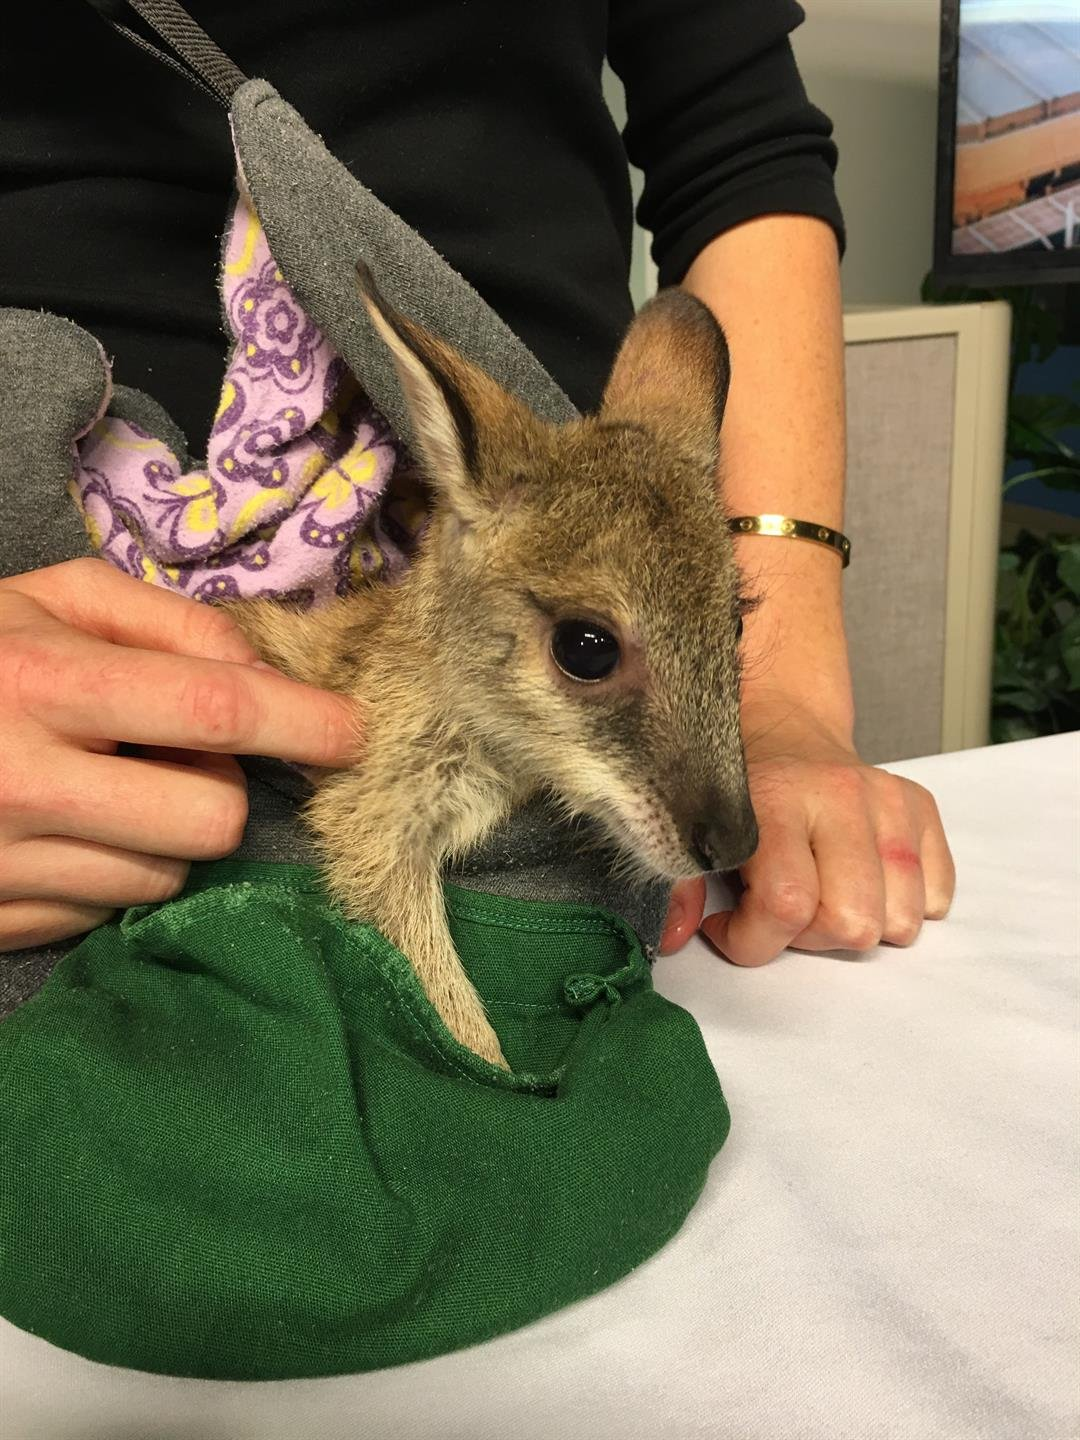 Rocco, a baby Wallaby from the Wildlife World Zoo visits GMAZ